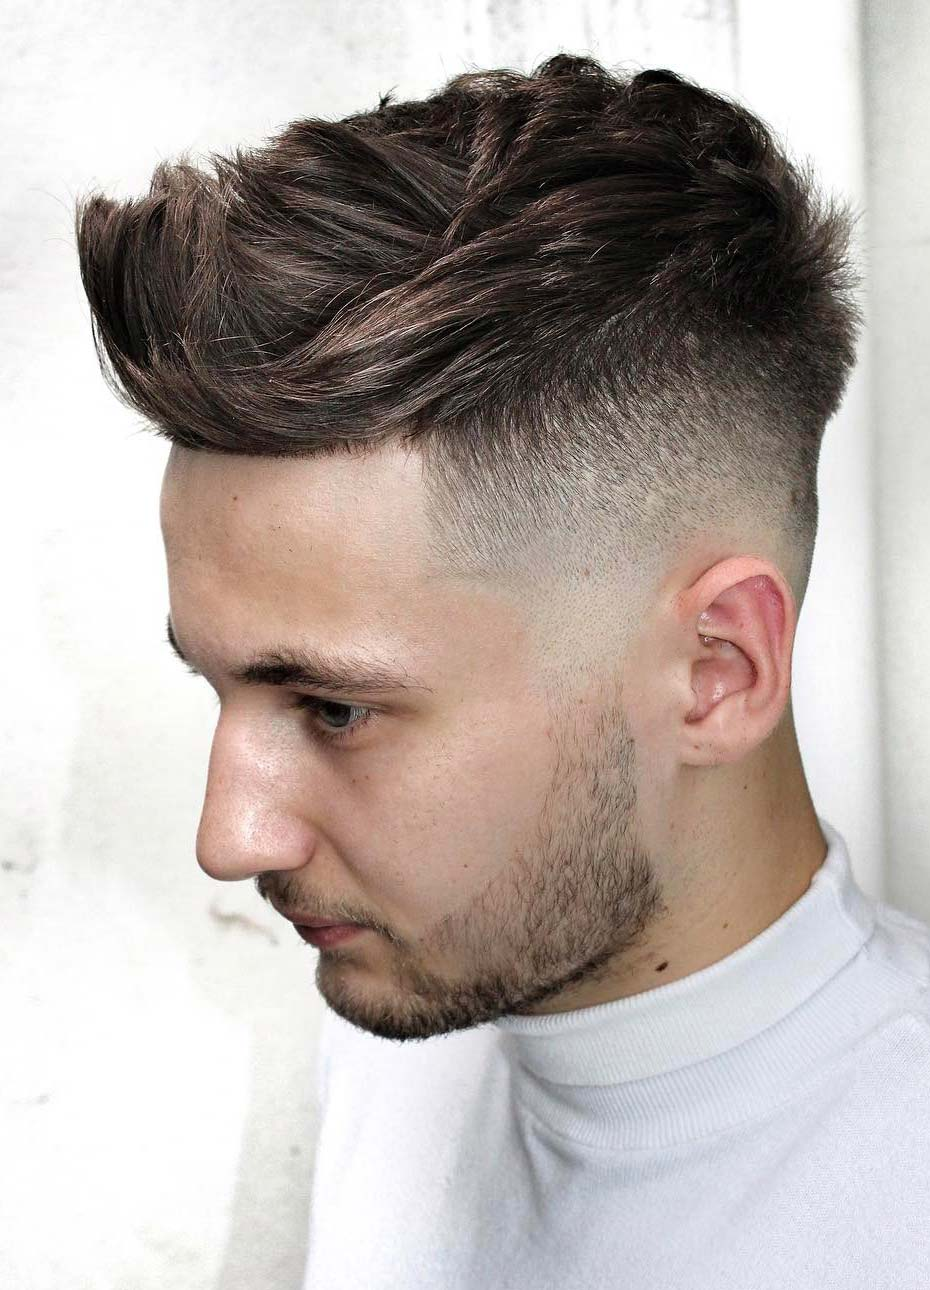 6 short textured men's haircut; 50 Stylish Undercut Hairstyle Variations To Copy In 2021 A Complete Guide